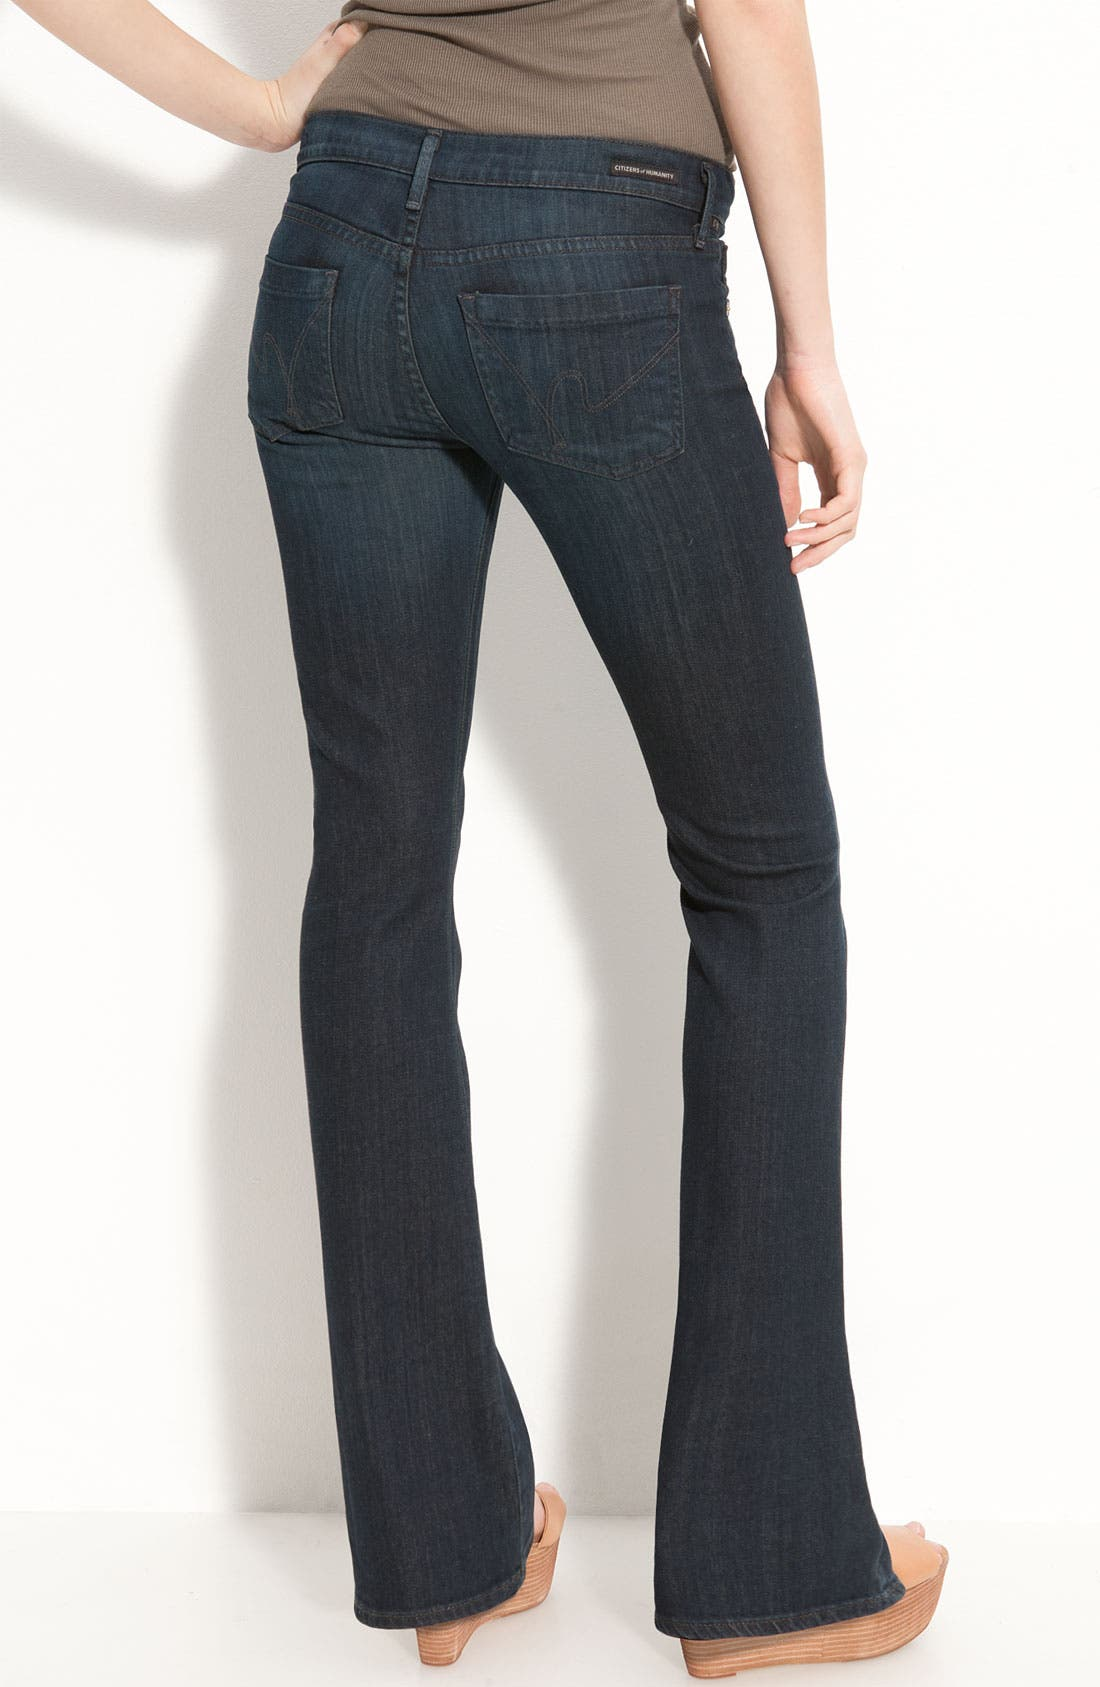 Alternate Image 1 Selected - Citizens of Humanity 'Dita' Bootcut Jeans (Jupiter Wash) (Petite)